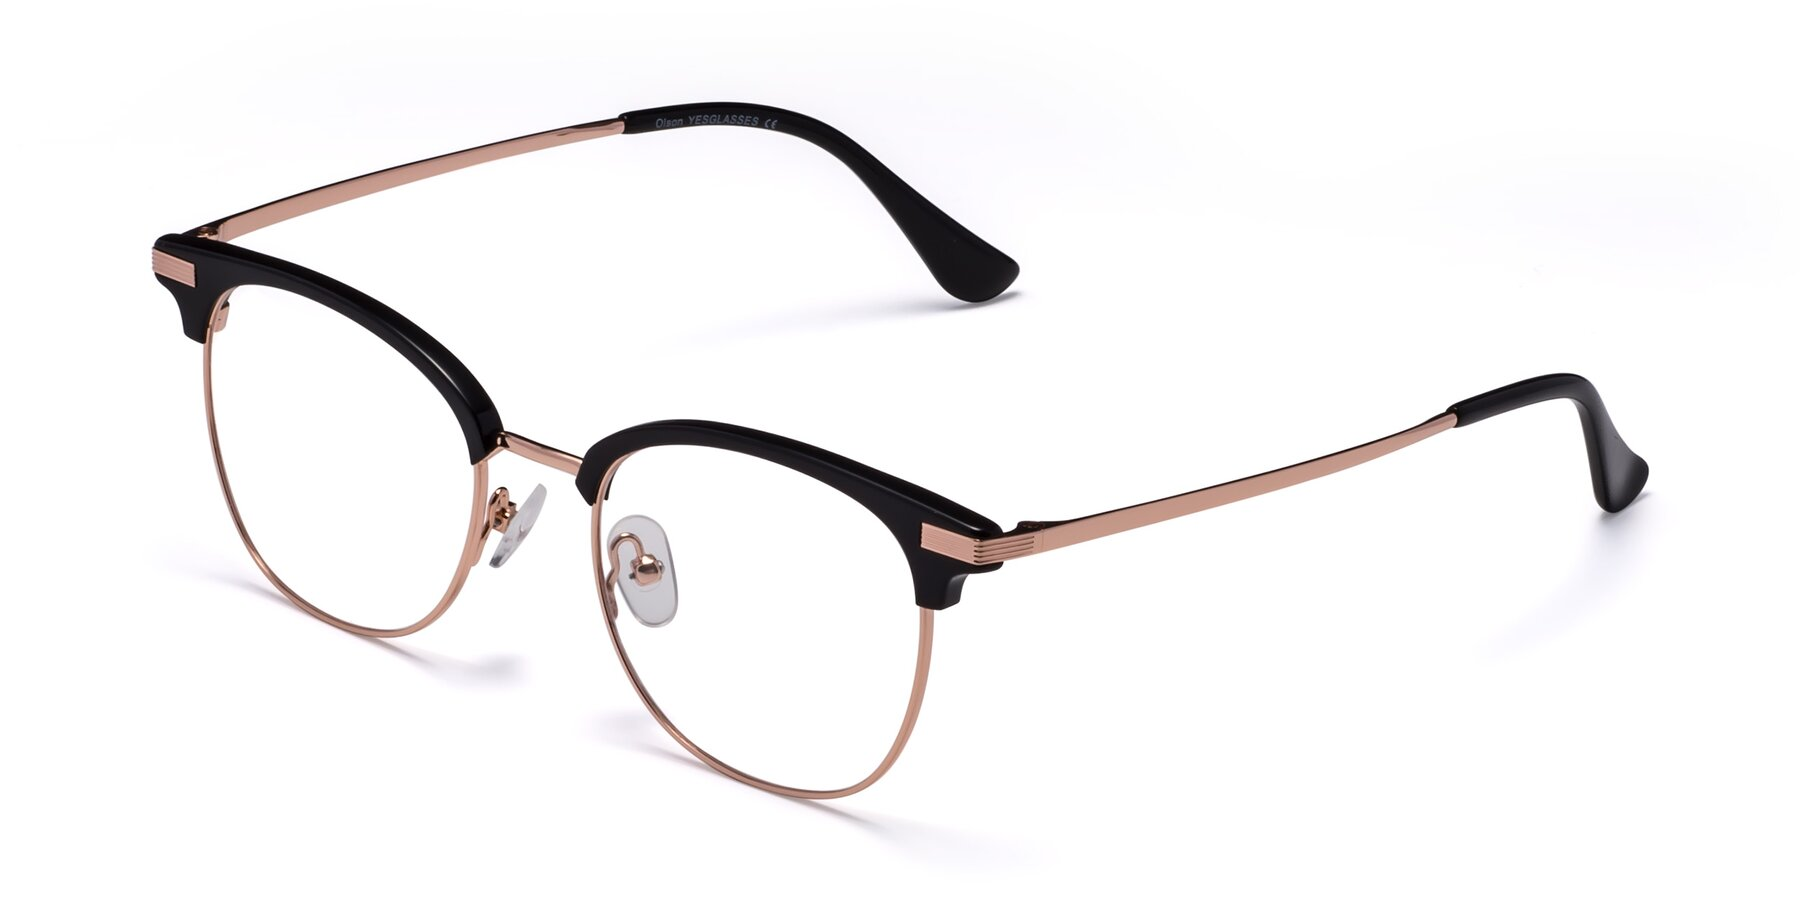 Angle of Olson in Black-Rose Gold with Clear Eyeglass Lenses